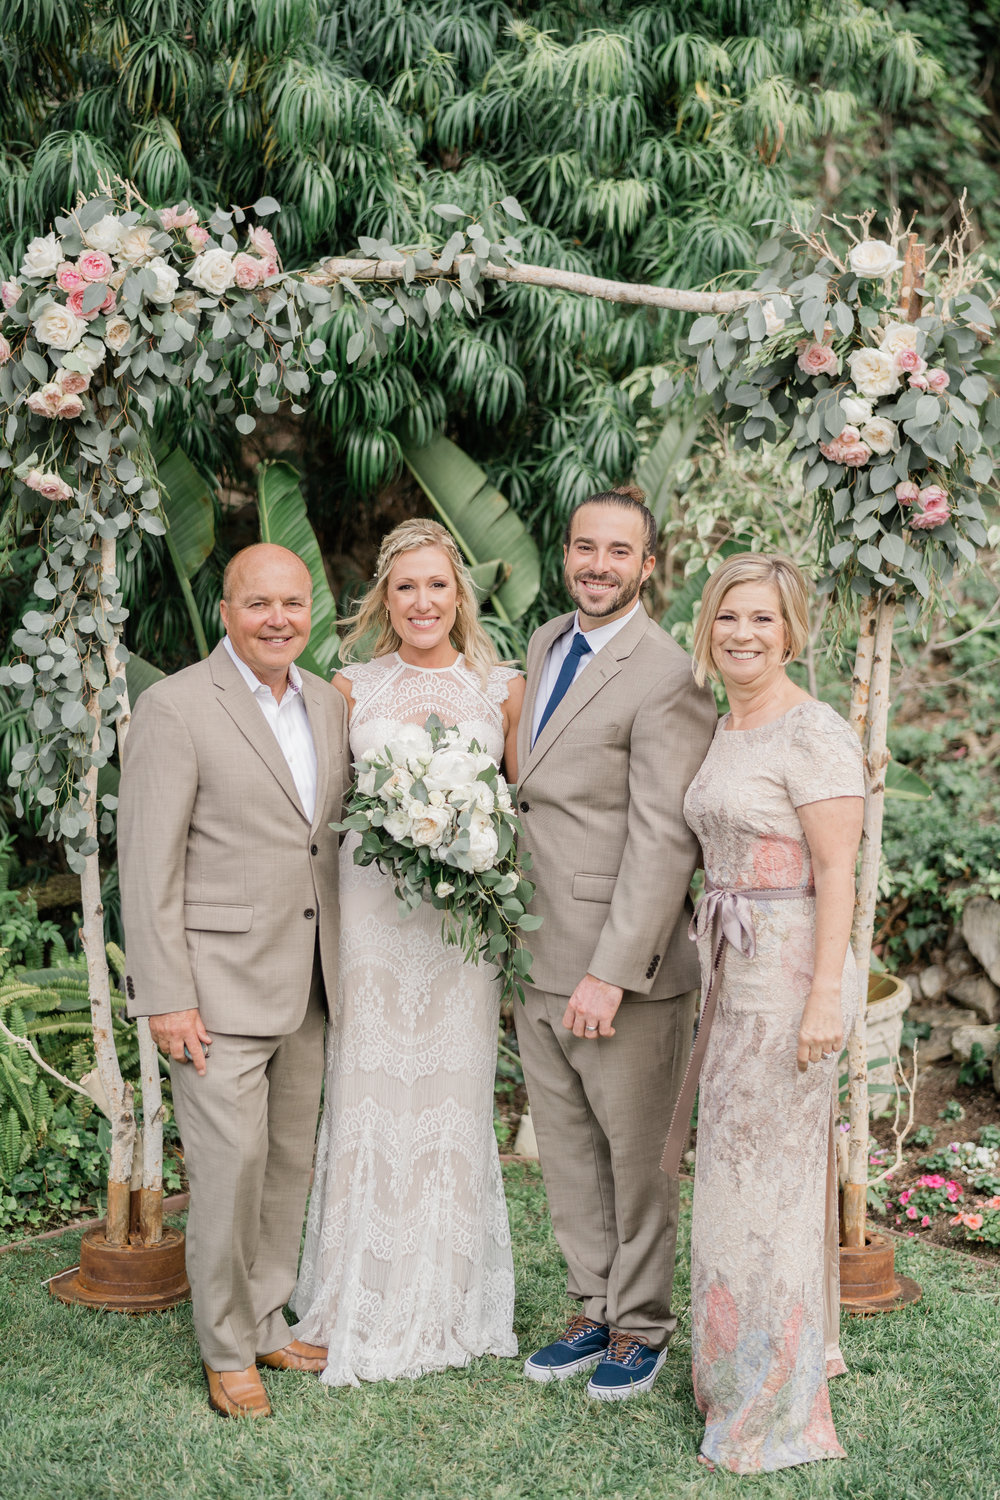 Brittany + Evan - Family - Hitched Photo39.JPG